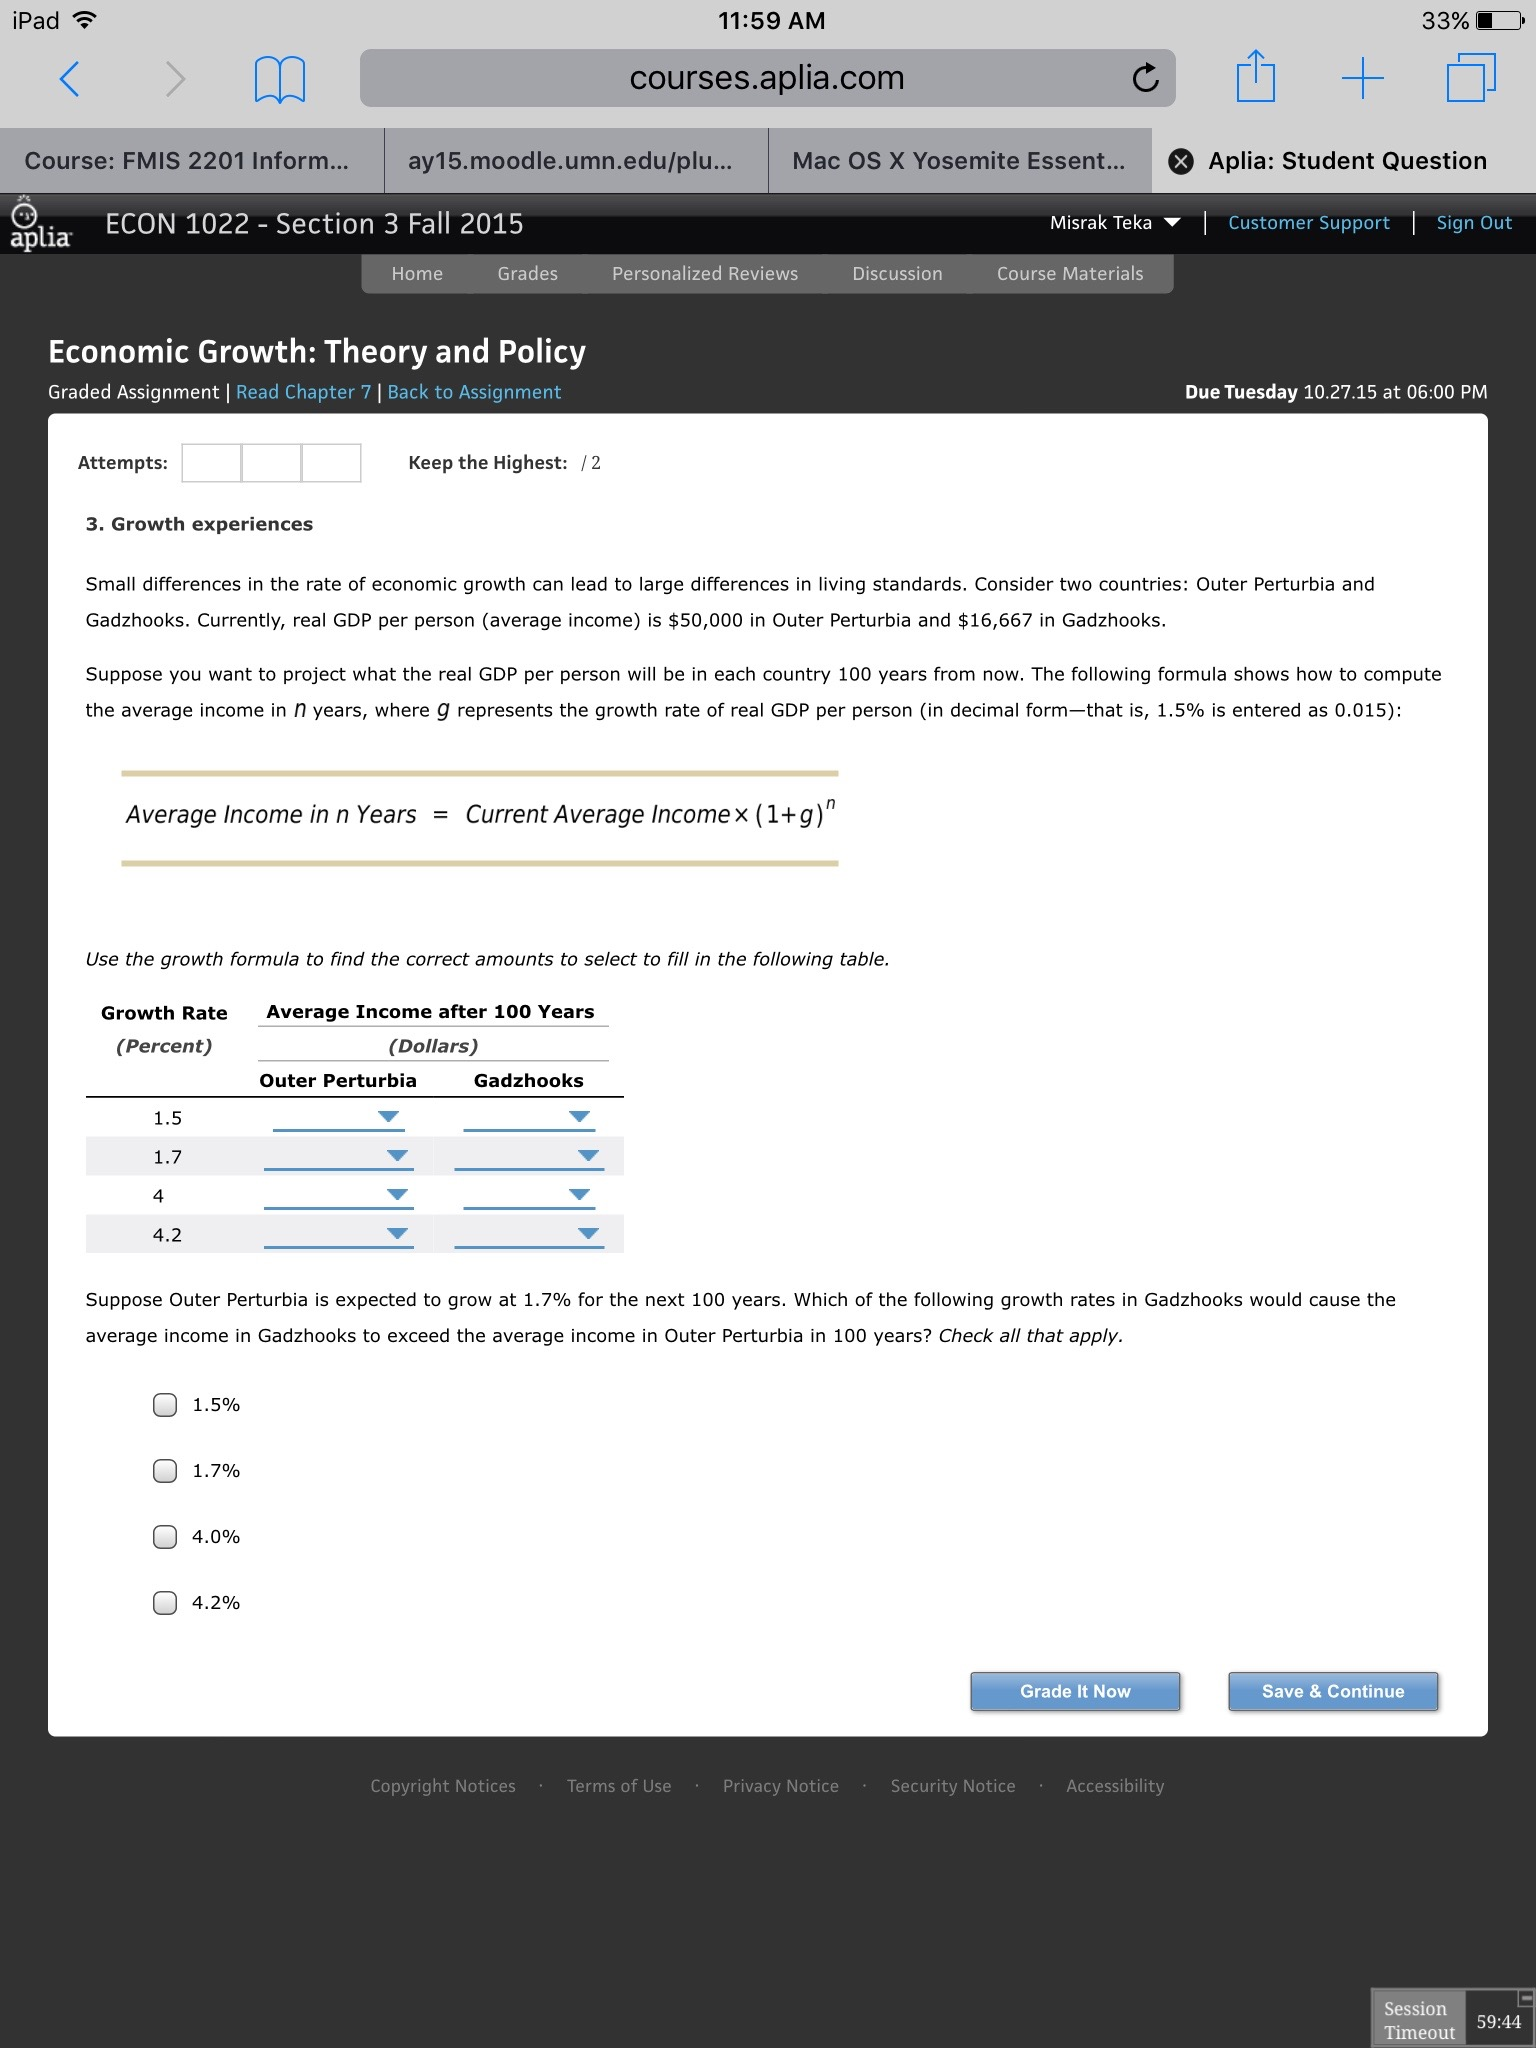 Help with Aplia accounting assignment: 13-5 Mastery Problem?